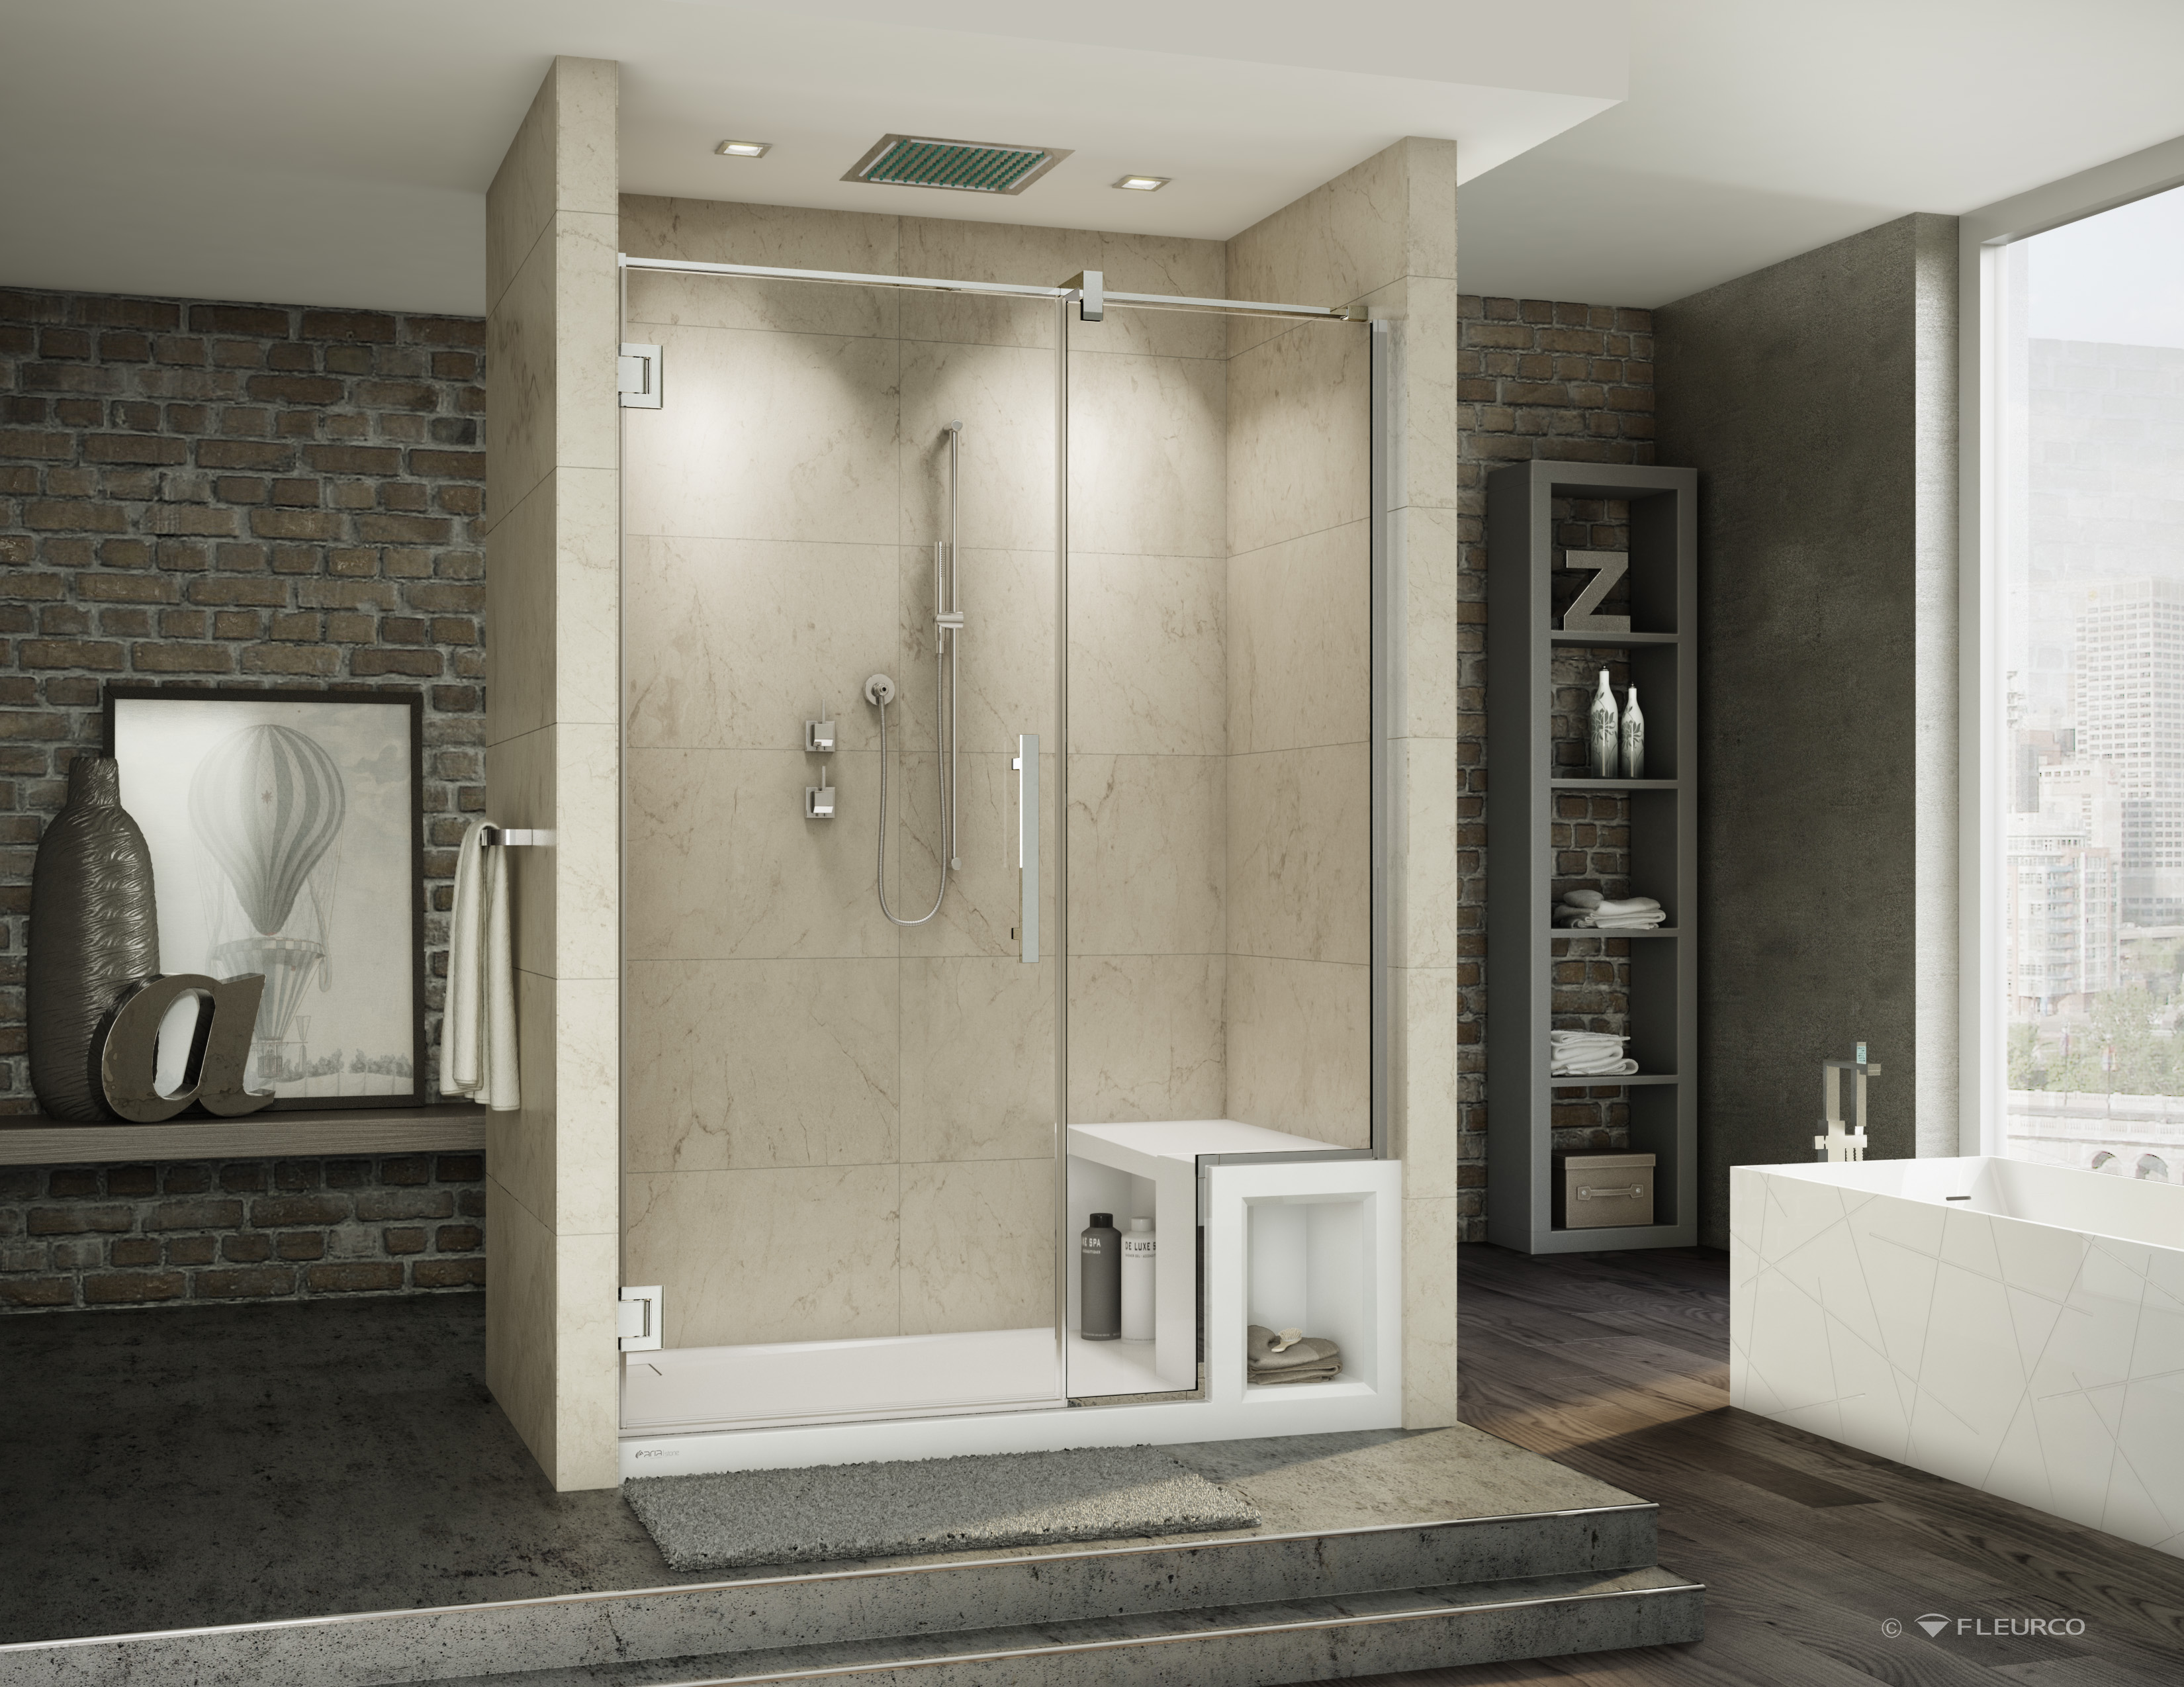 Modern Shower Seats : On the Bench: Great Bases from Fleurco  mecc interiors  design bites